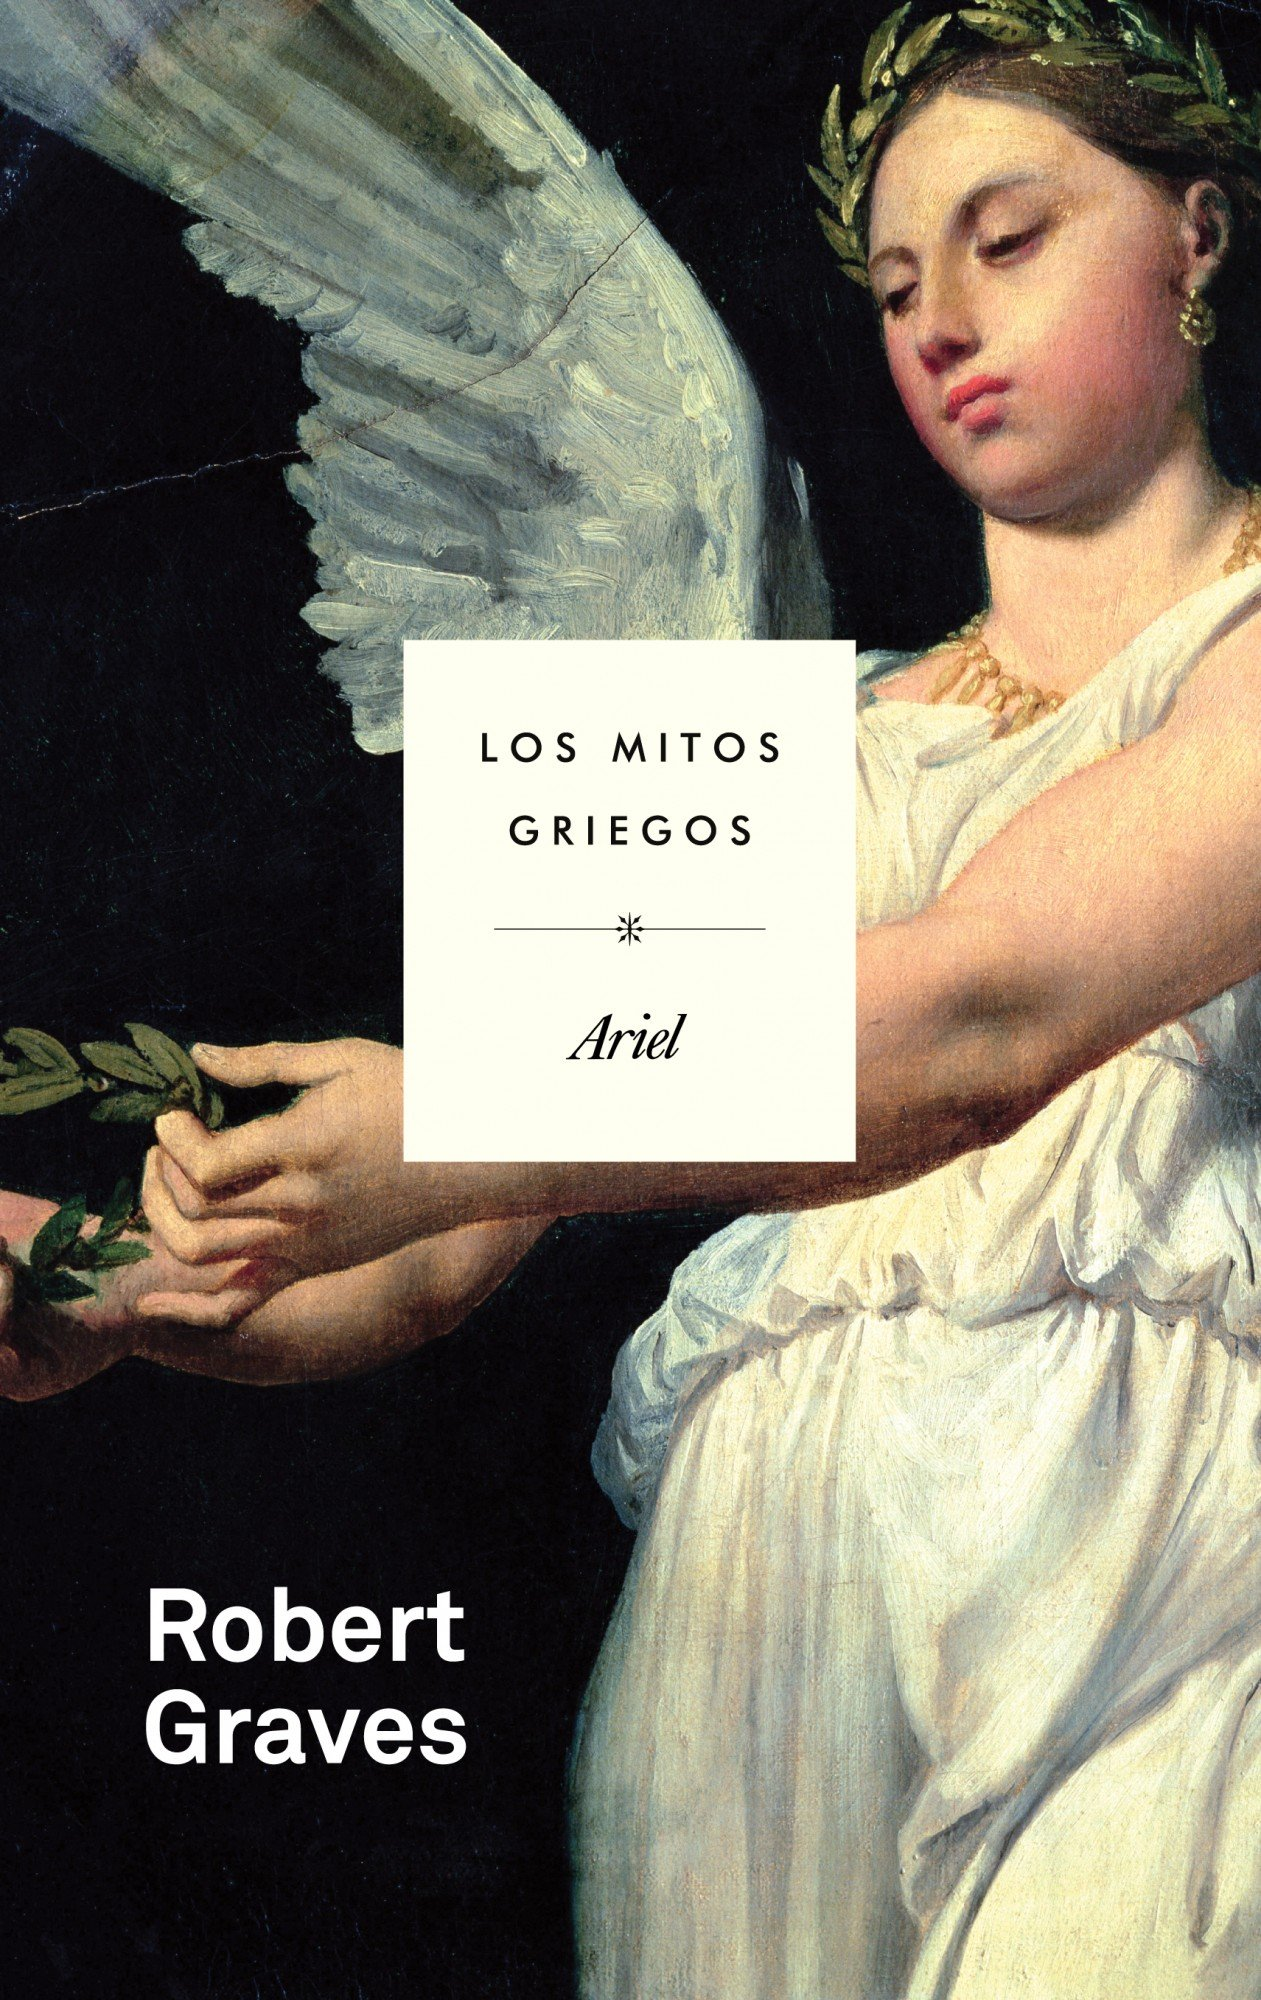 Los mitos griegos (Ariel) Tapa blanda – 16 feb 2012 Robert Graves Lucía Graves Editorial Ariel 843440009X